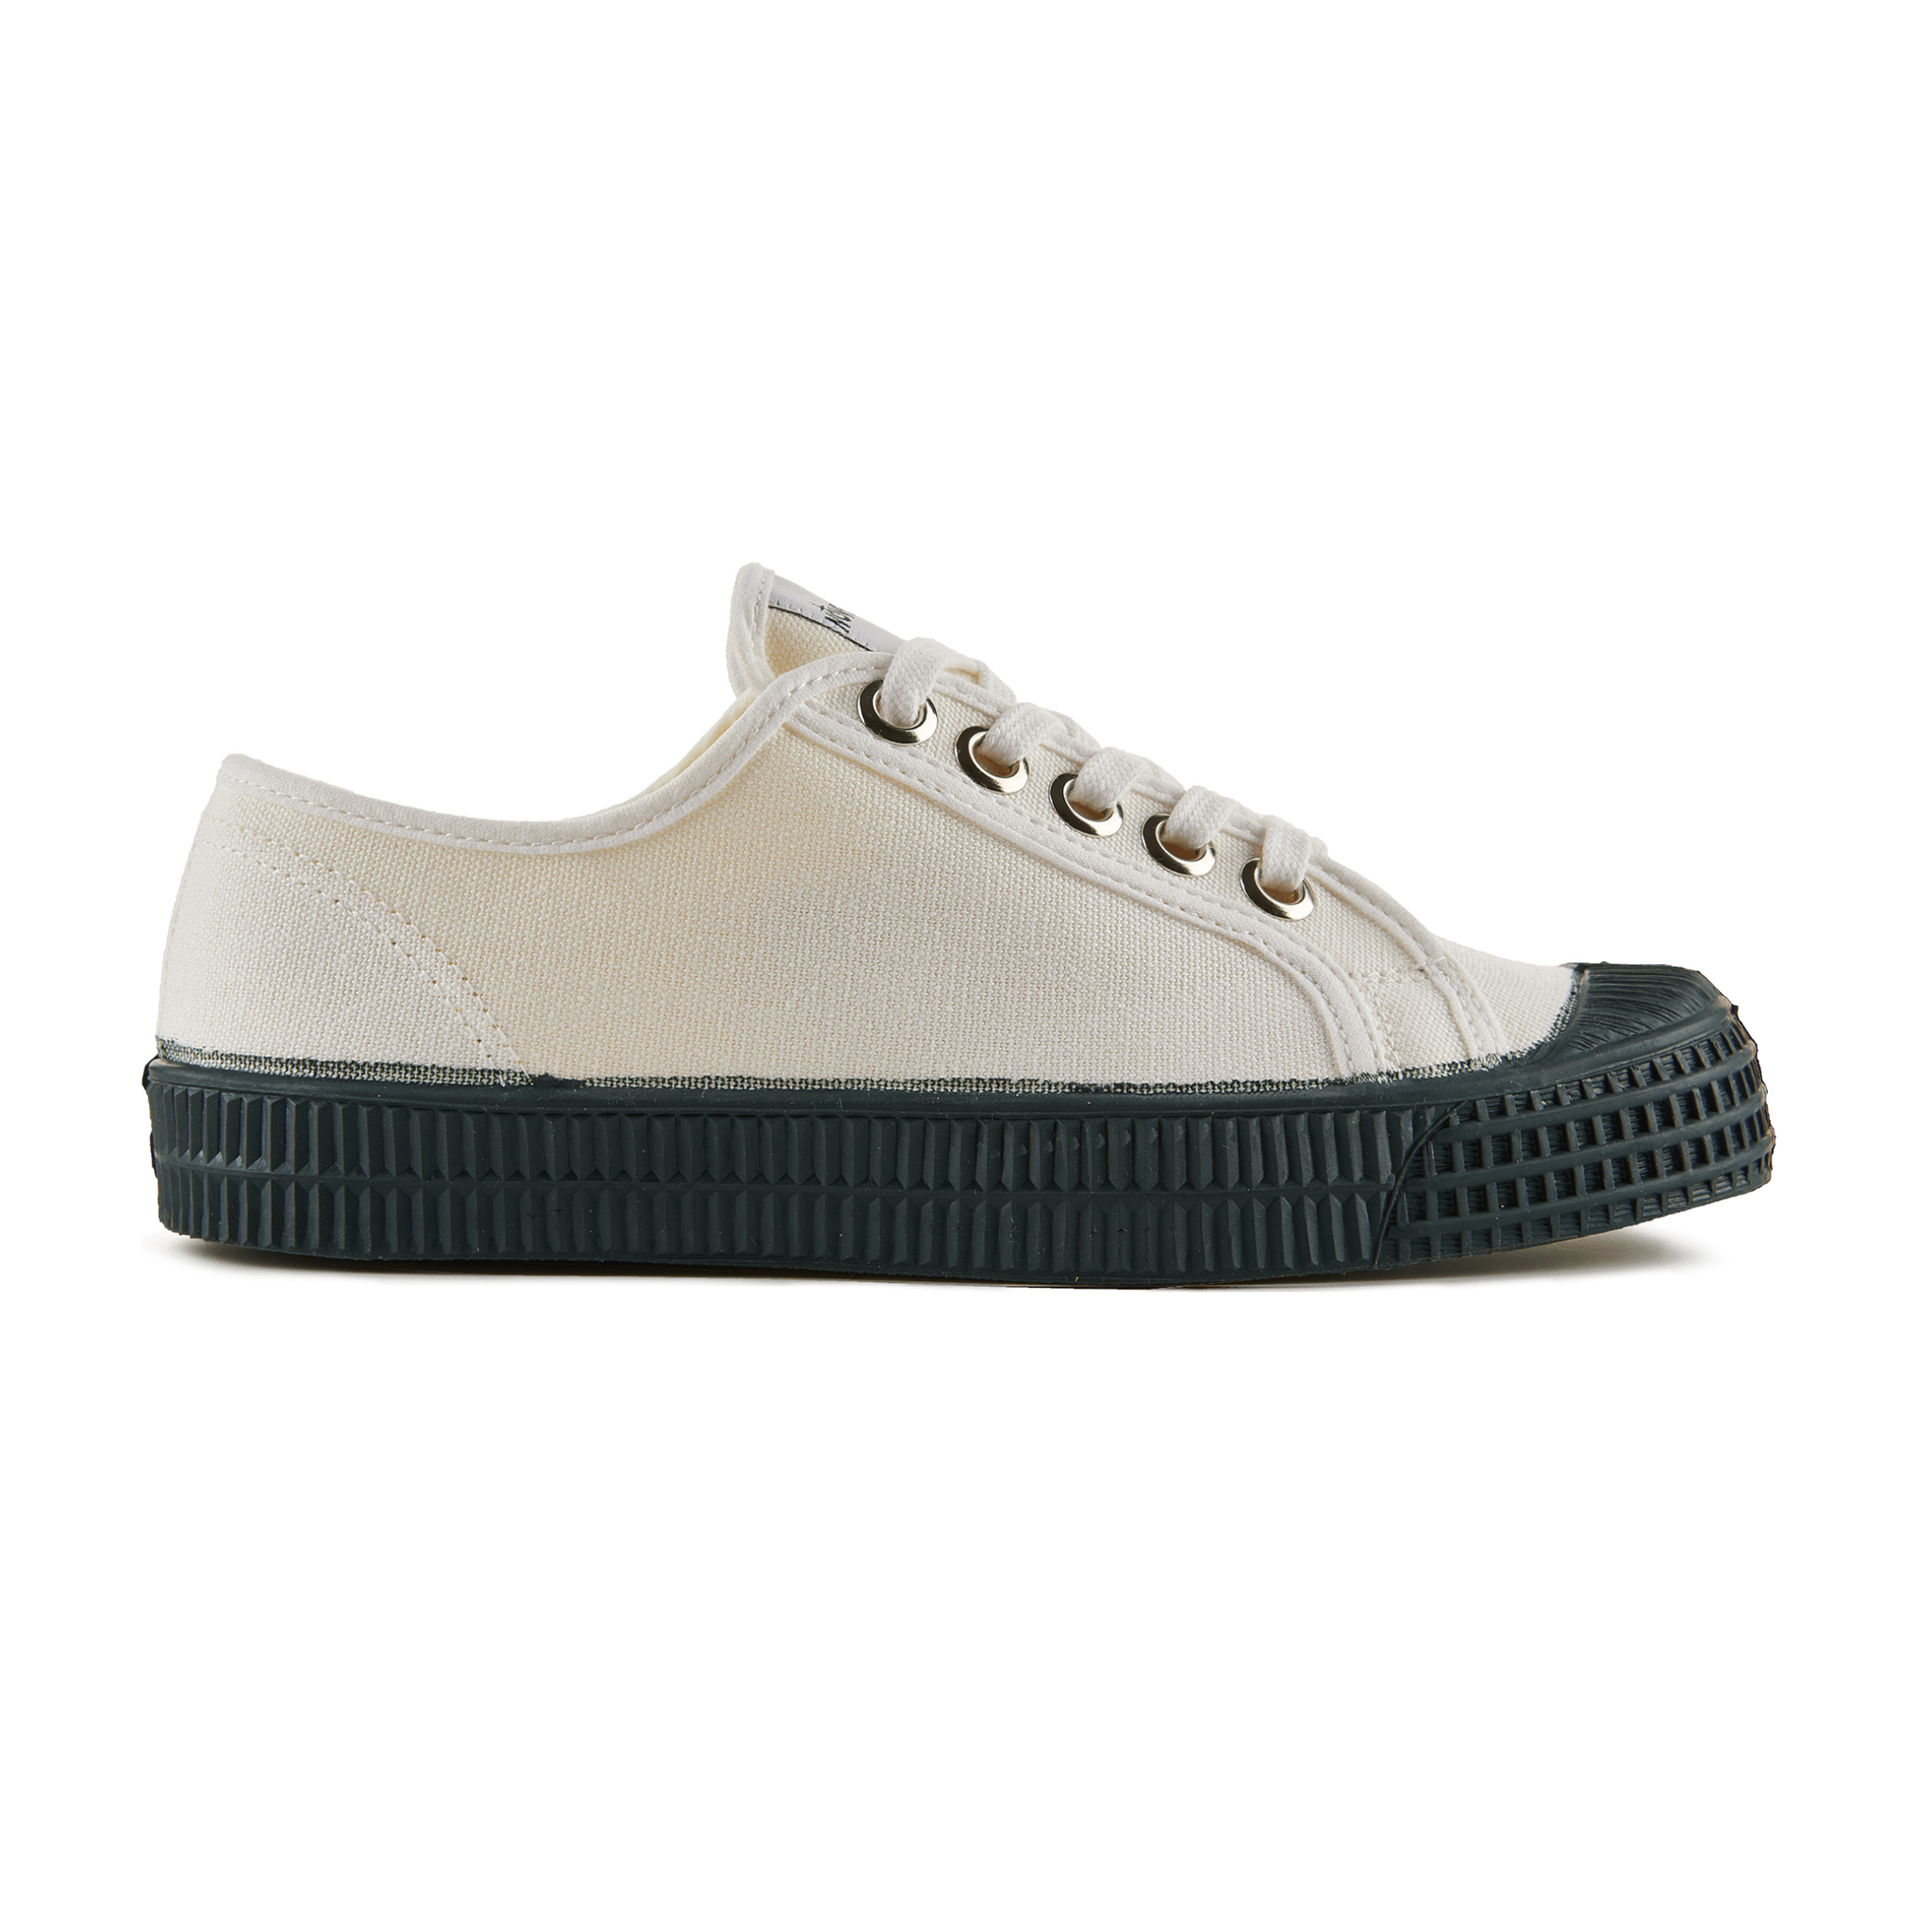 Novesta White Canvas Shoe with Dark Green Sole - Side View